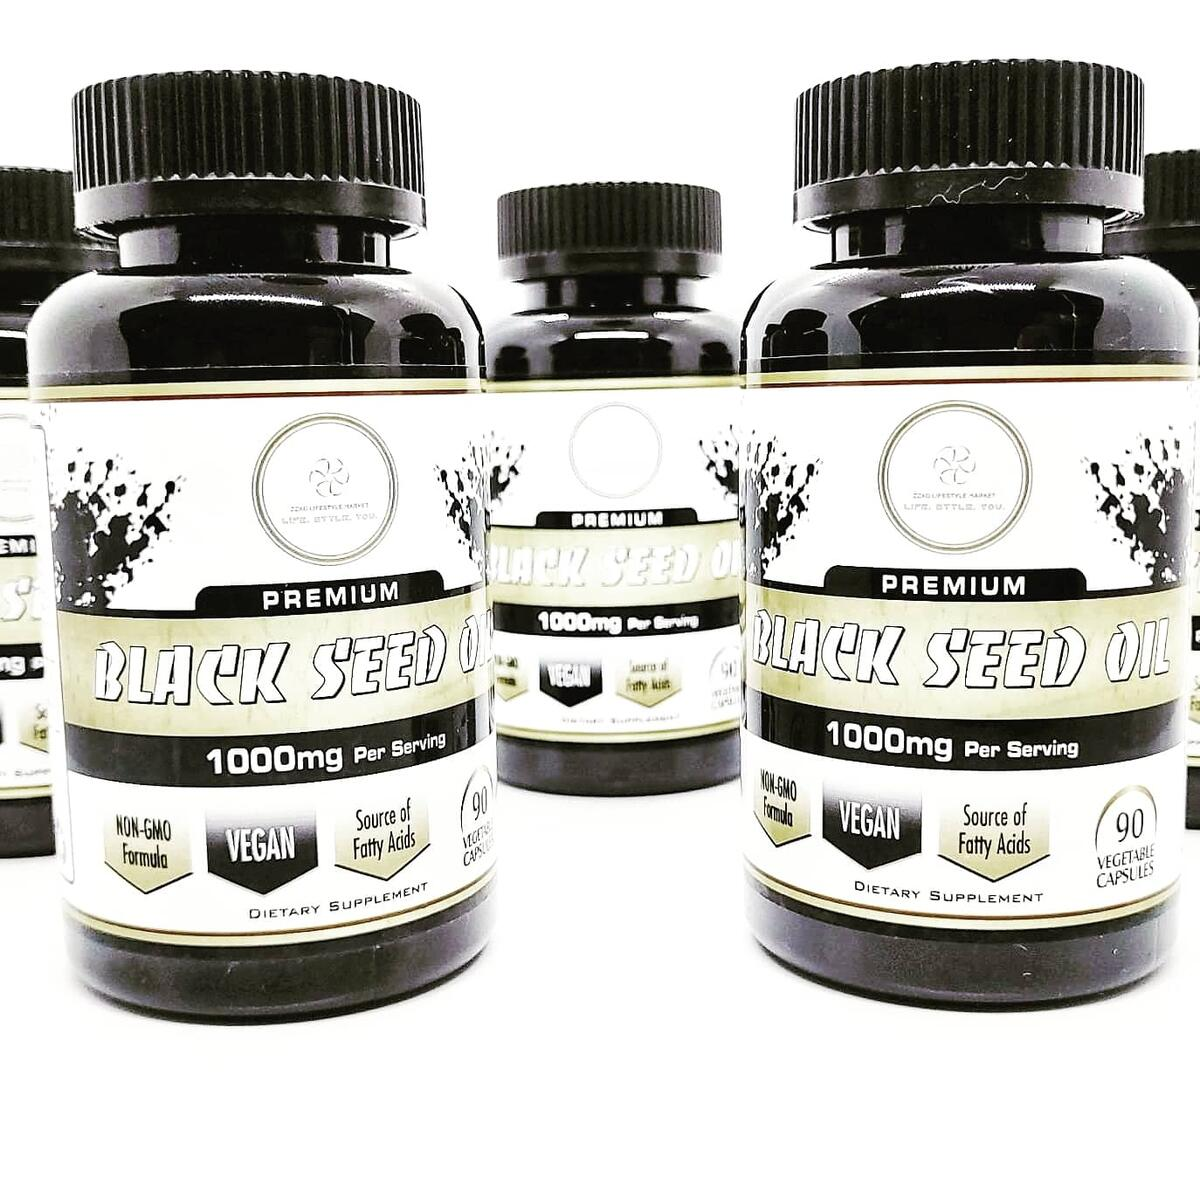 Premium Supplements - Black Seed Oil & Graviola